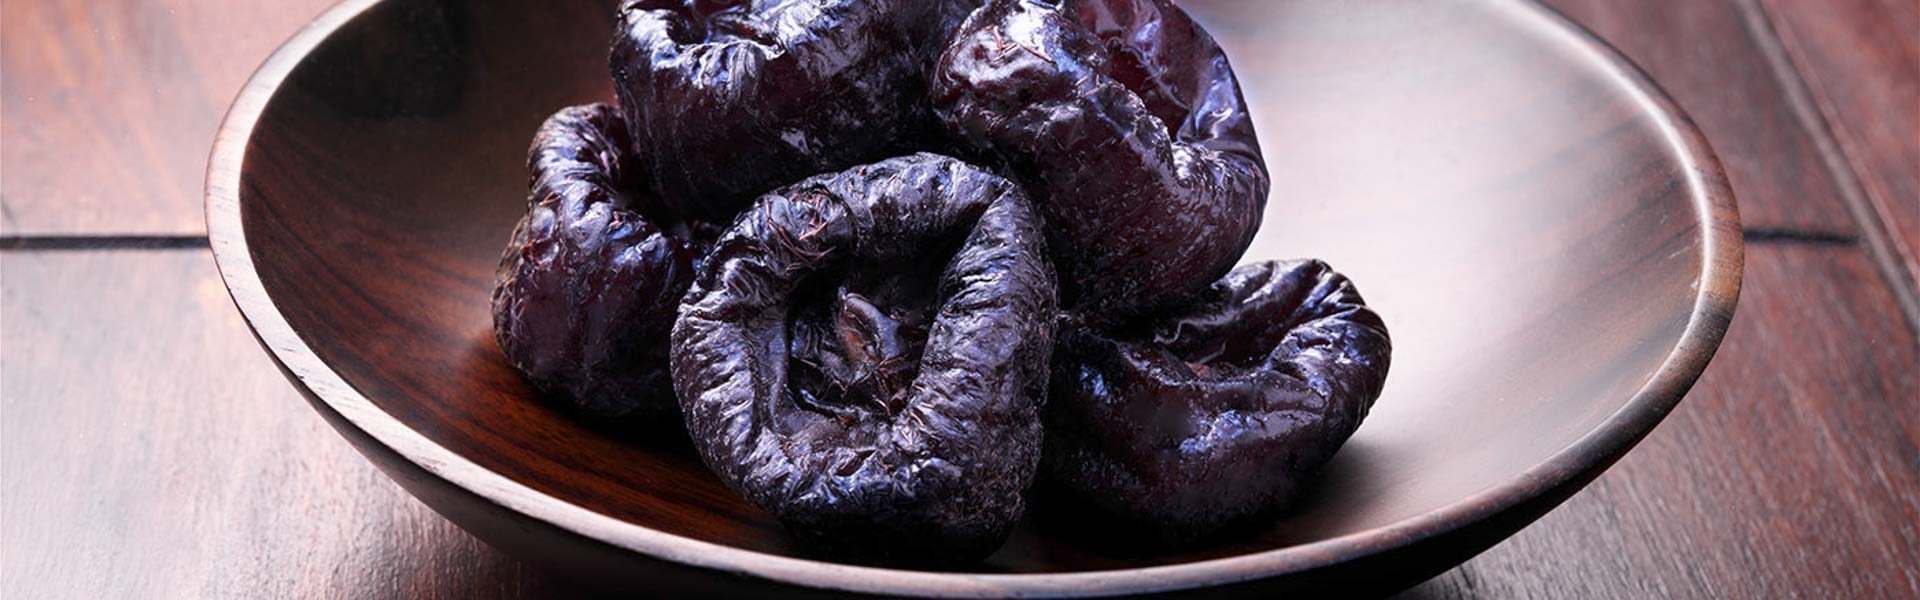 prunes may help improve digestive health in more ways than one